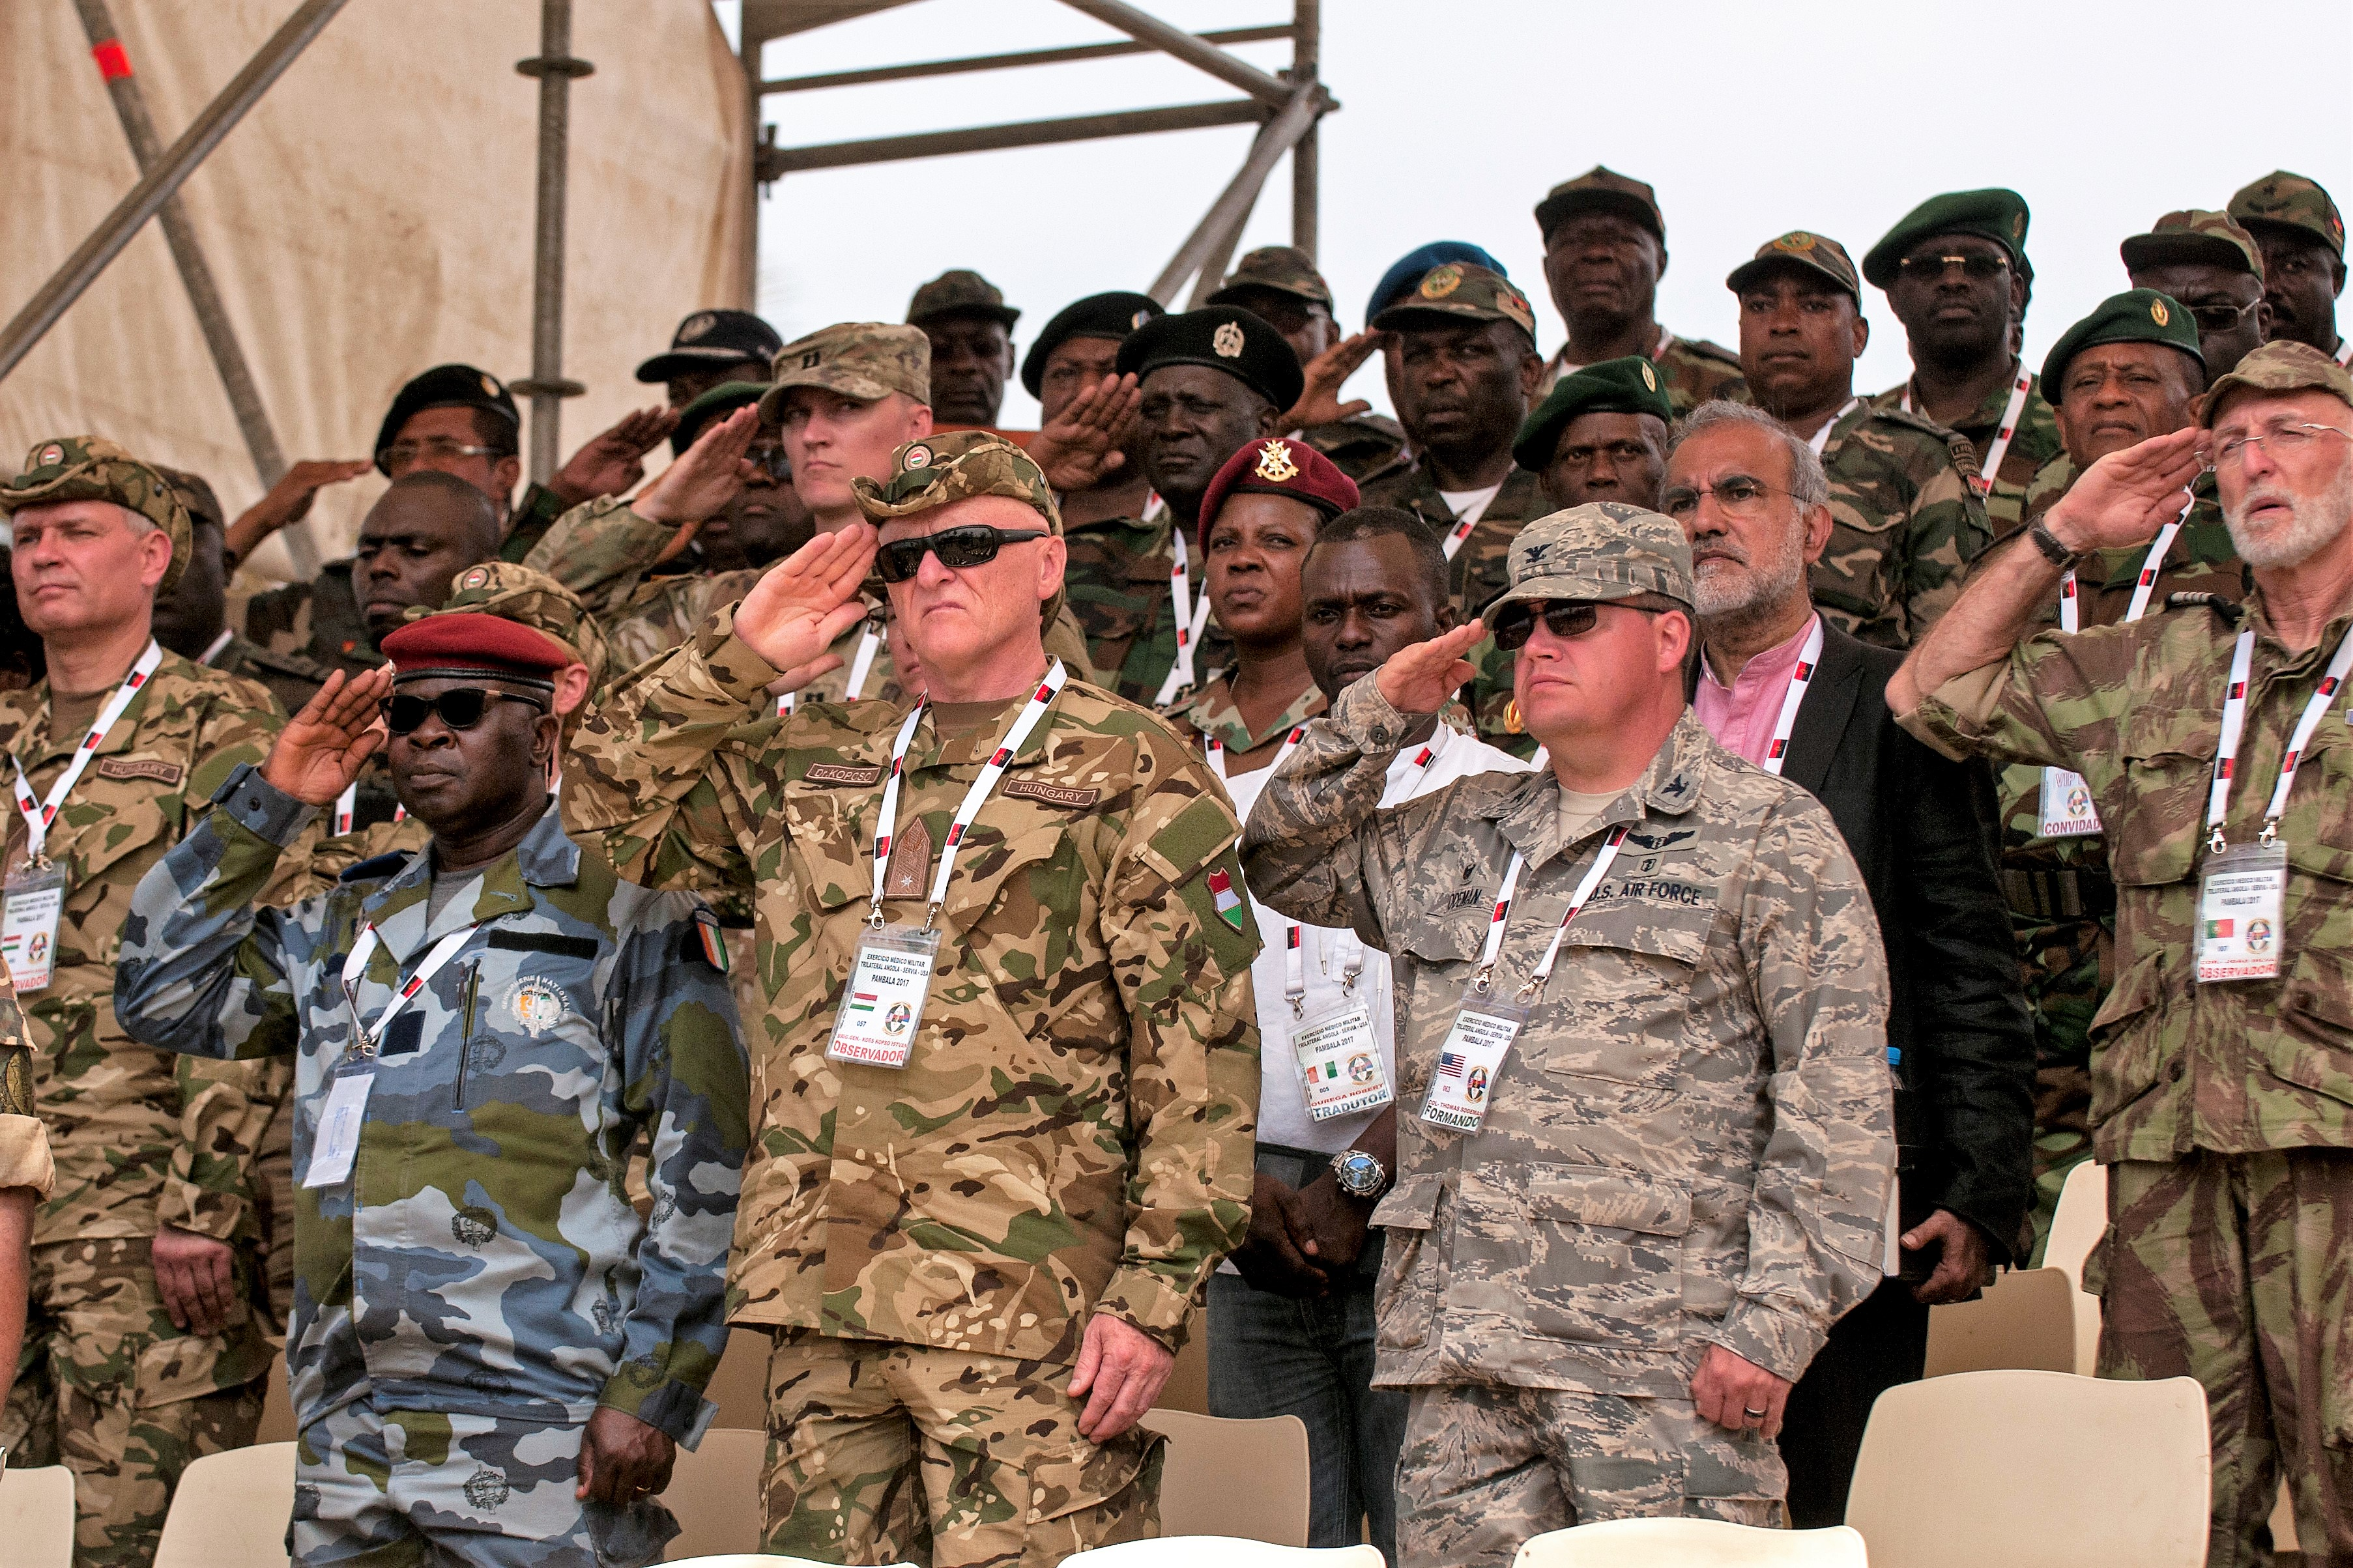 Representatives of several countries from all over the world, including the Ivory Coast, Portugal and  Hungary, attend the closing ceremony and VIP day for the PAMBALA 2017 exercise Dec. 14, 2017, Bengo Province, Angola. During the closing ceremony, members of both the Serbian Armed Forces and the Ohio National Guard exchanged flags with their host nation, Angola, and remarks were given by representatives of each participating country on the success of the first-ever trilateral engagement. (Ohio National Guard photo by Staff Sgt. Wendy Kuhn)